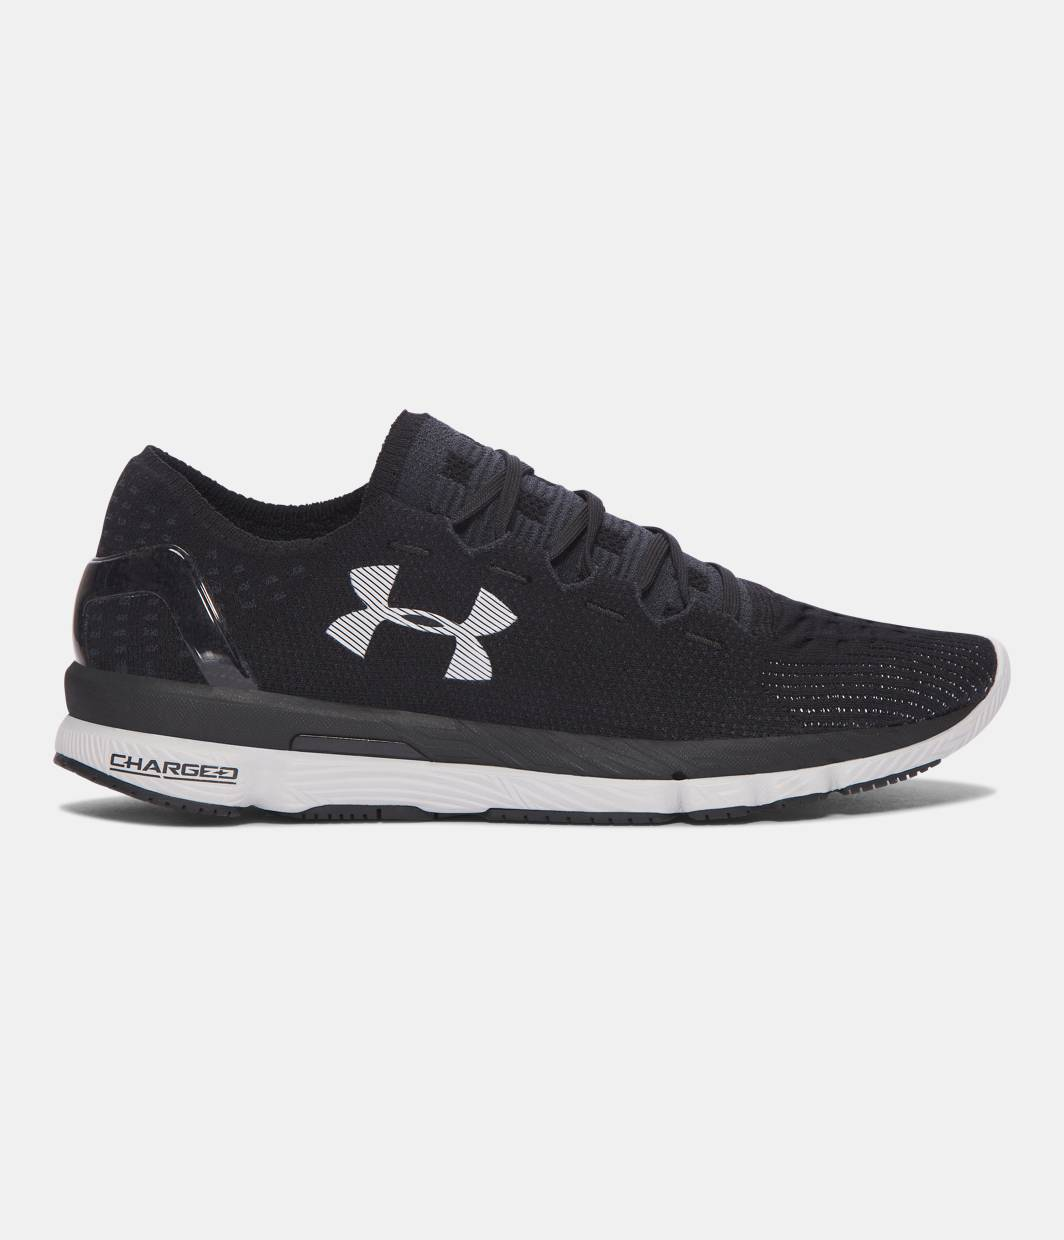 Under Armour Men's Speedform Slingshot Knit Lace Up Sneakers JlPcsY